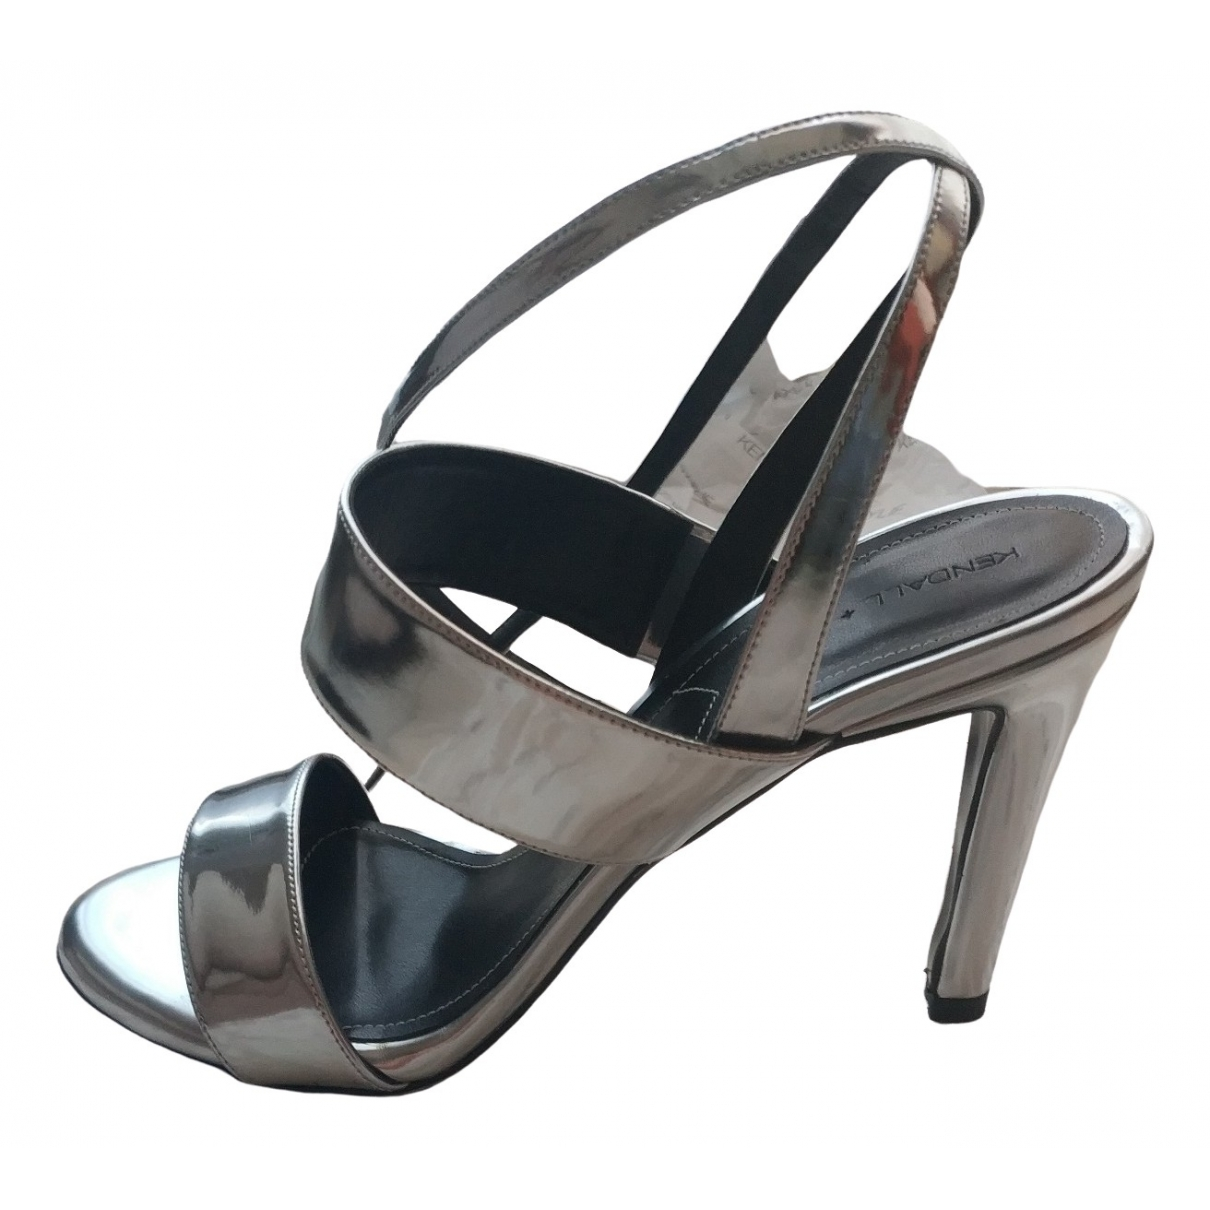 Kendall + Kylie \N Silver Patent leather Sandals for Women 36.5 EU